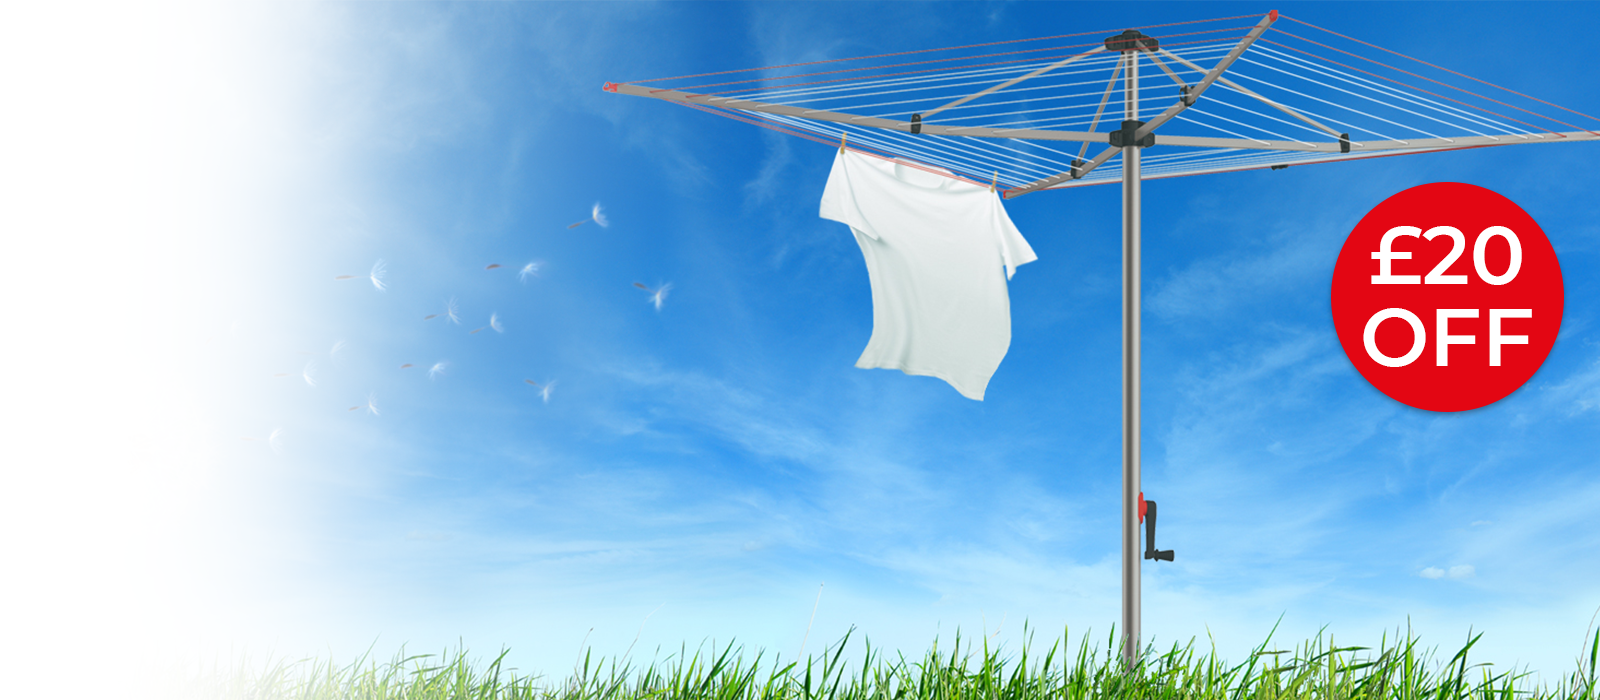 60m-supadry-hoist-£20-off-august-website-banner-2.png position: relative